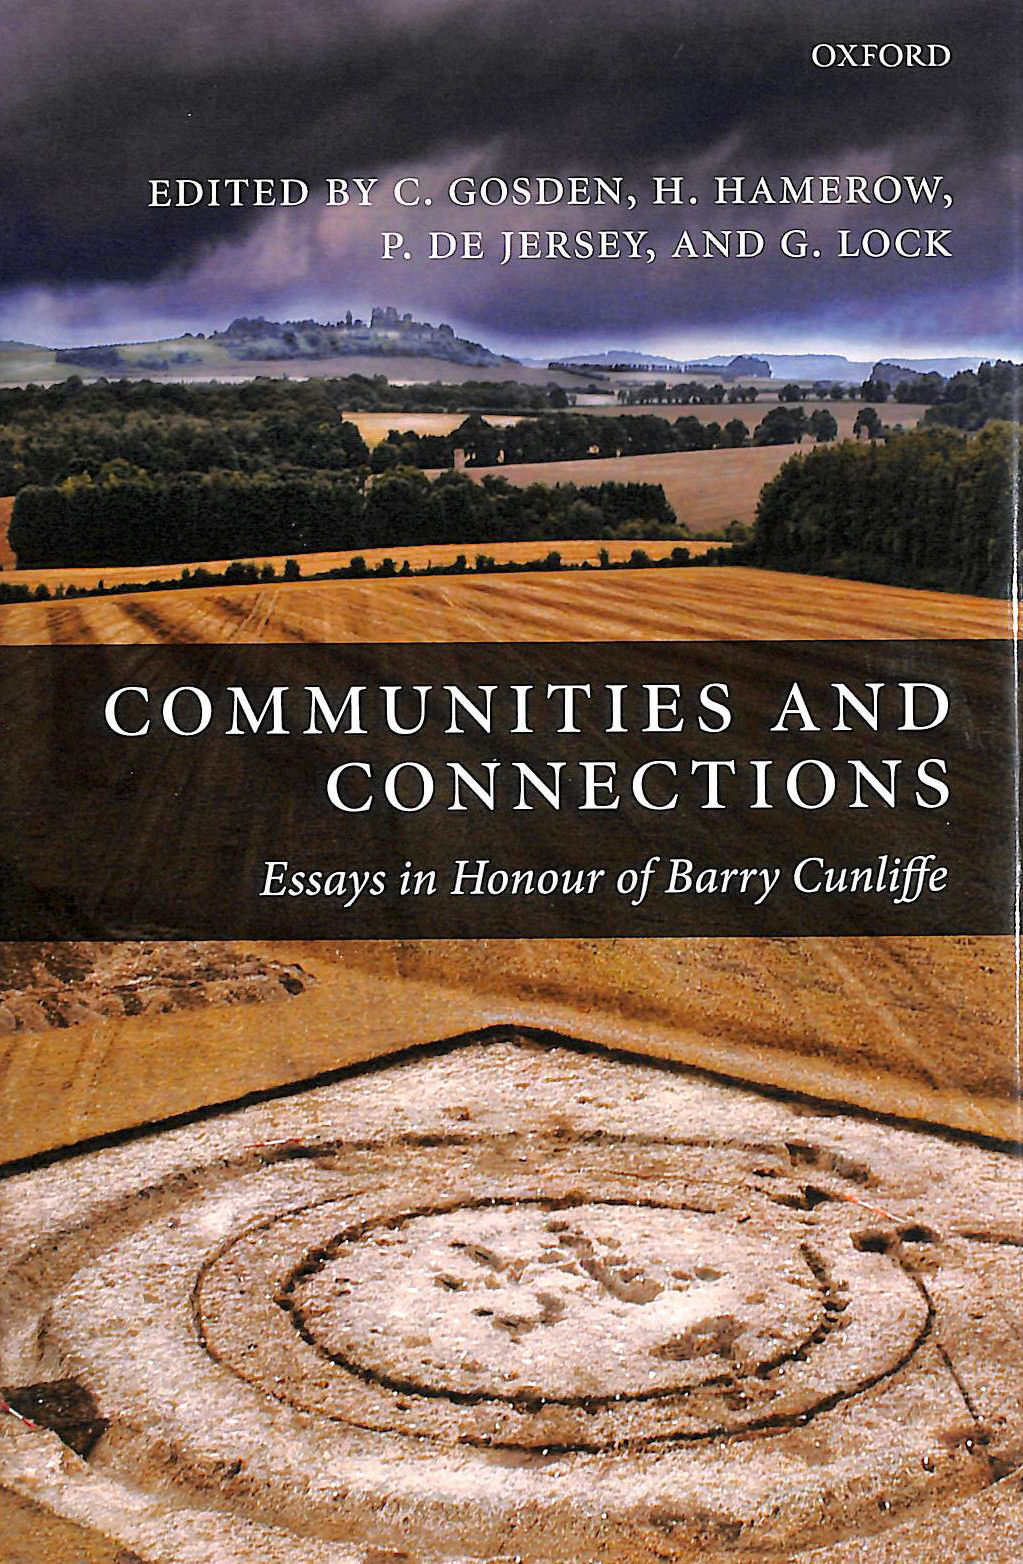 Image for Communities and Connections: Essays in Honour of Barry Cunliffe